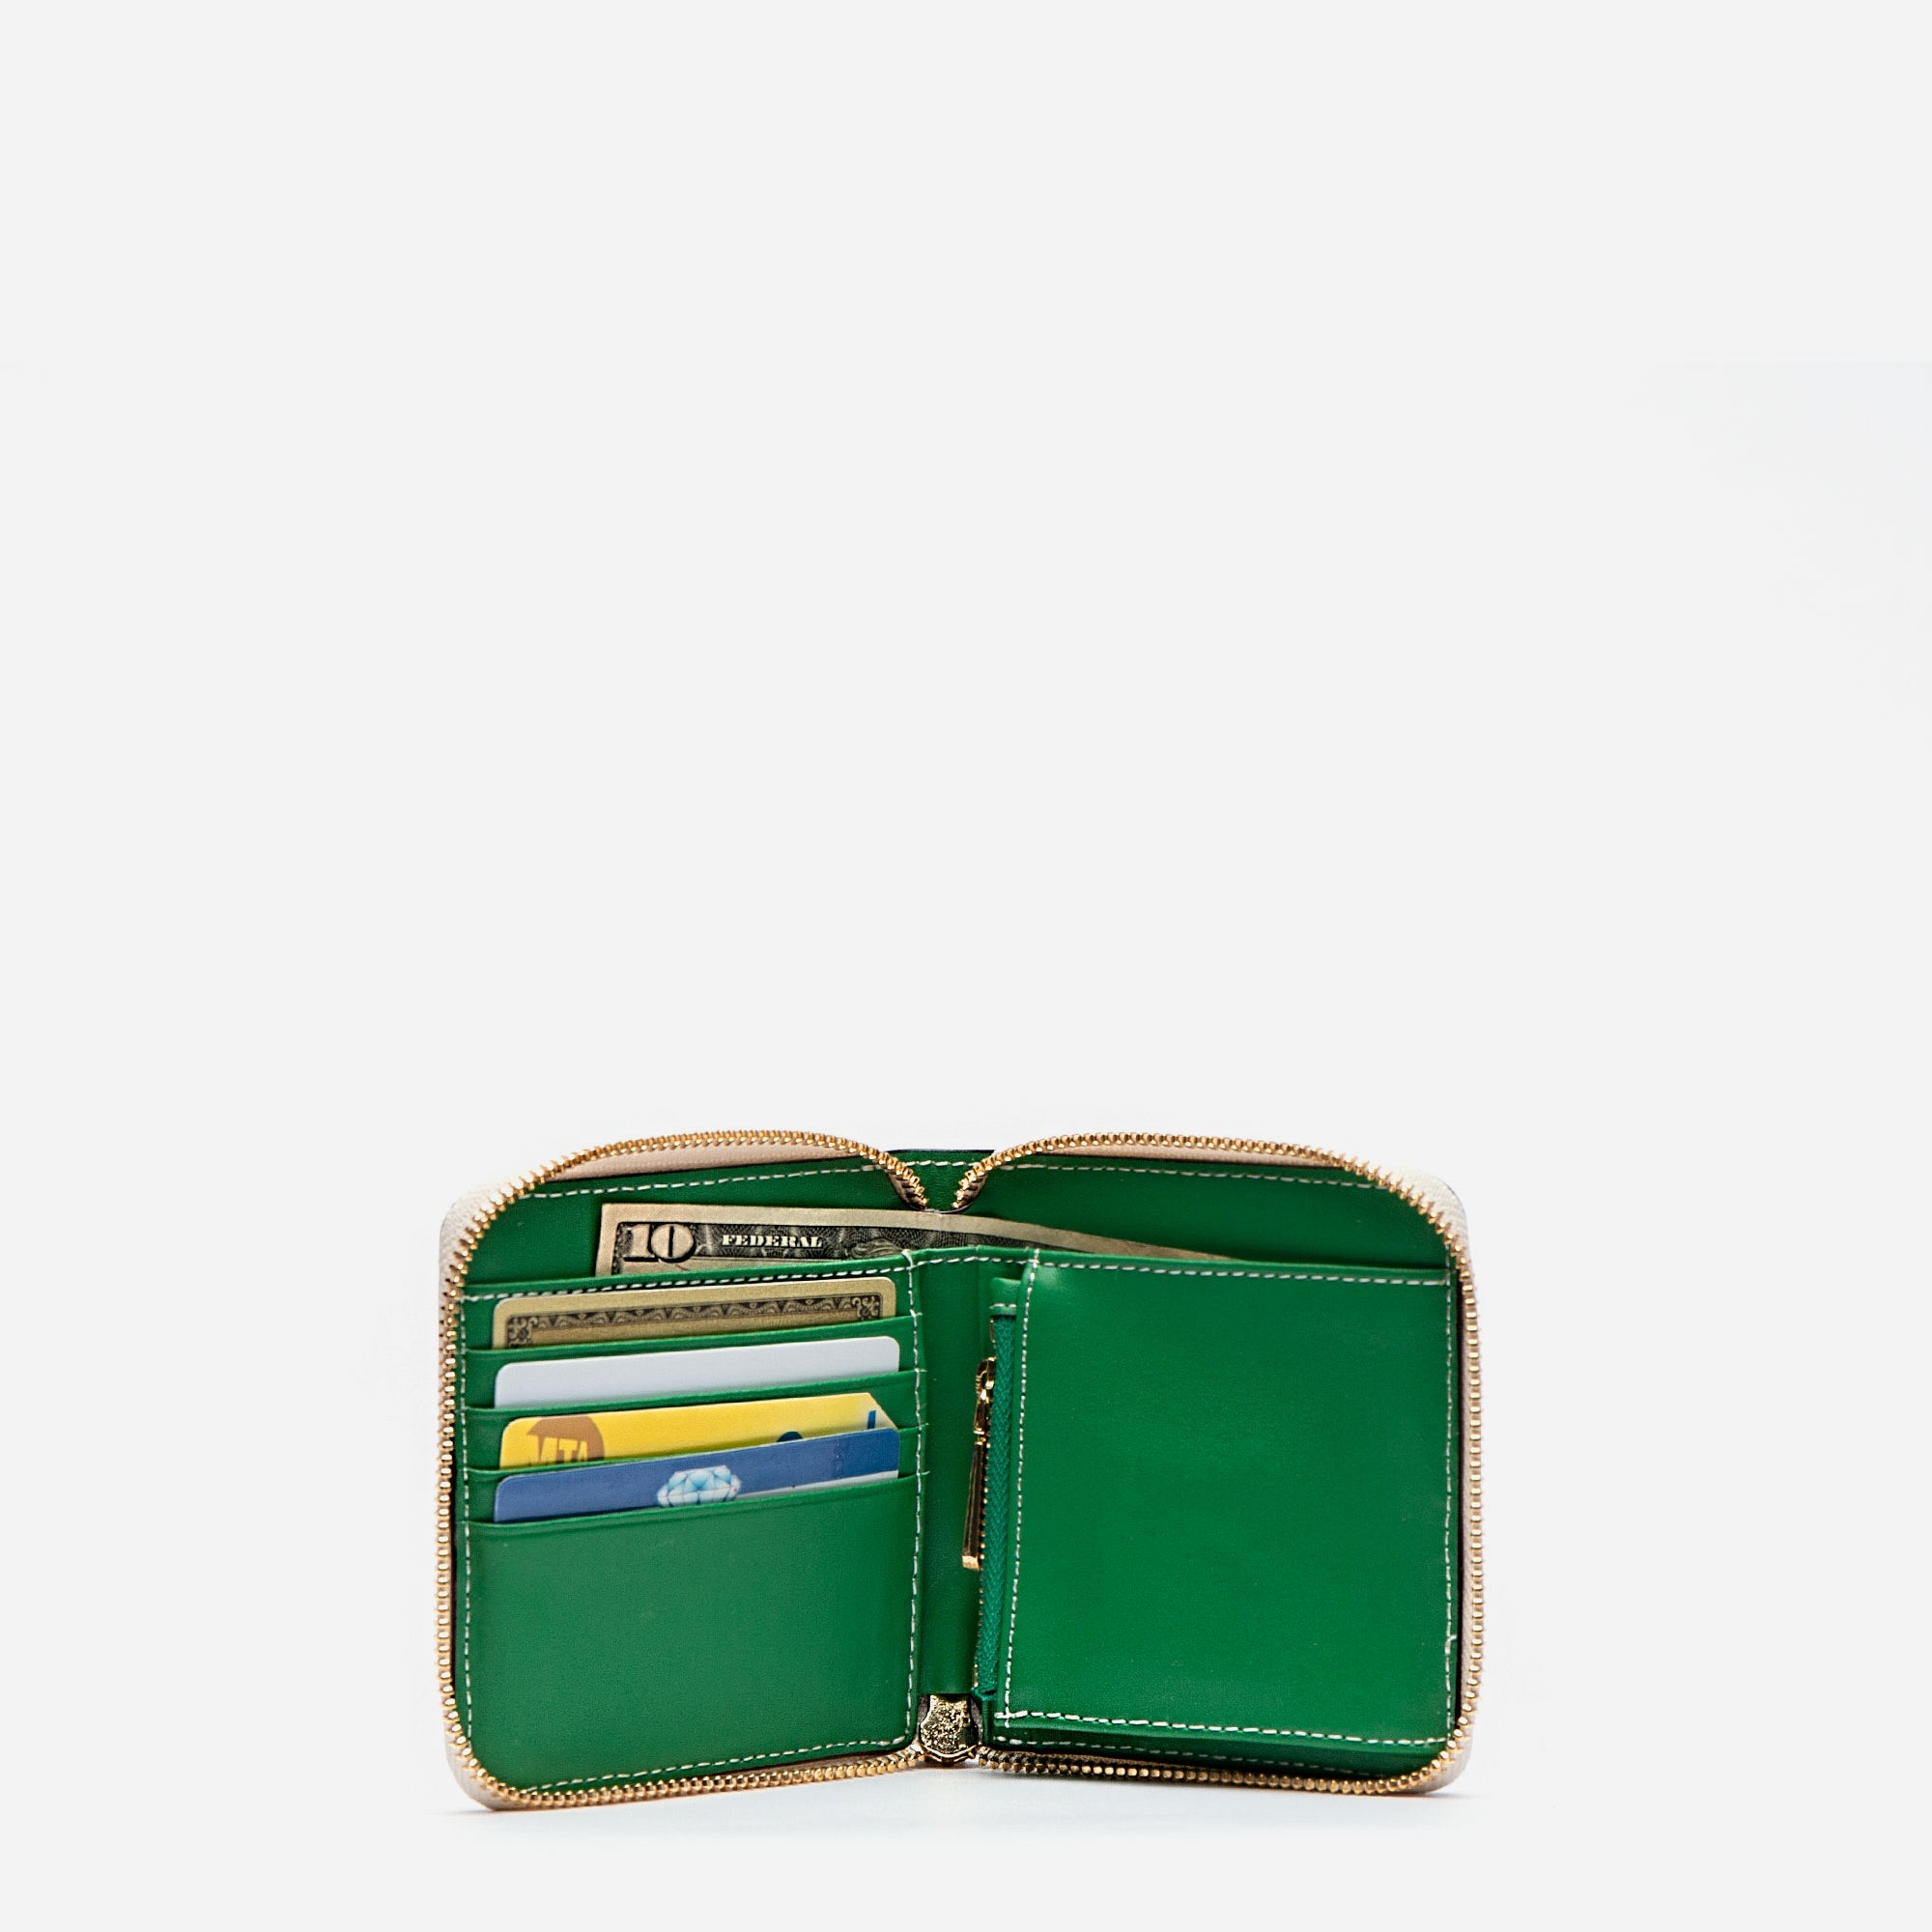 Roosevelt Small Zip Wallet Oyster Green